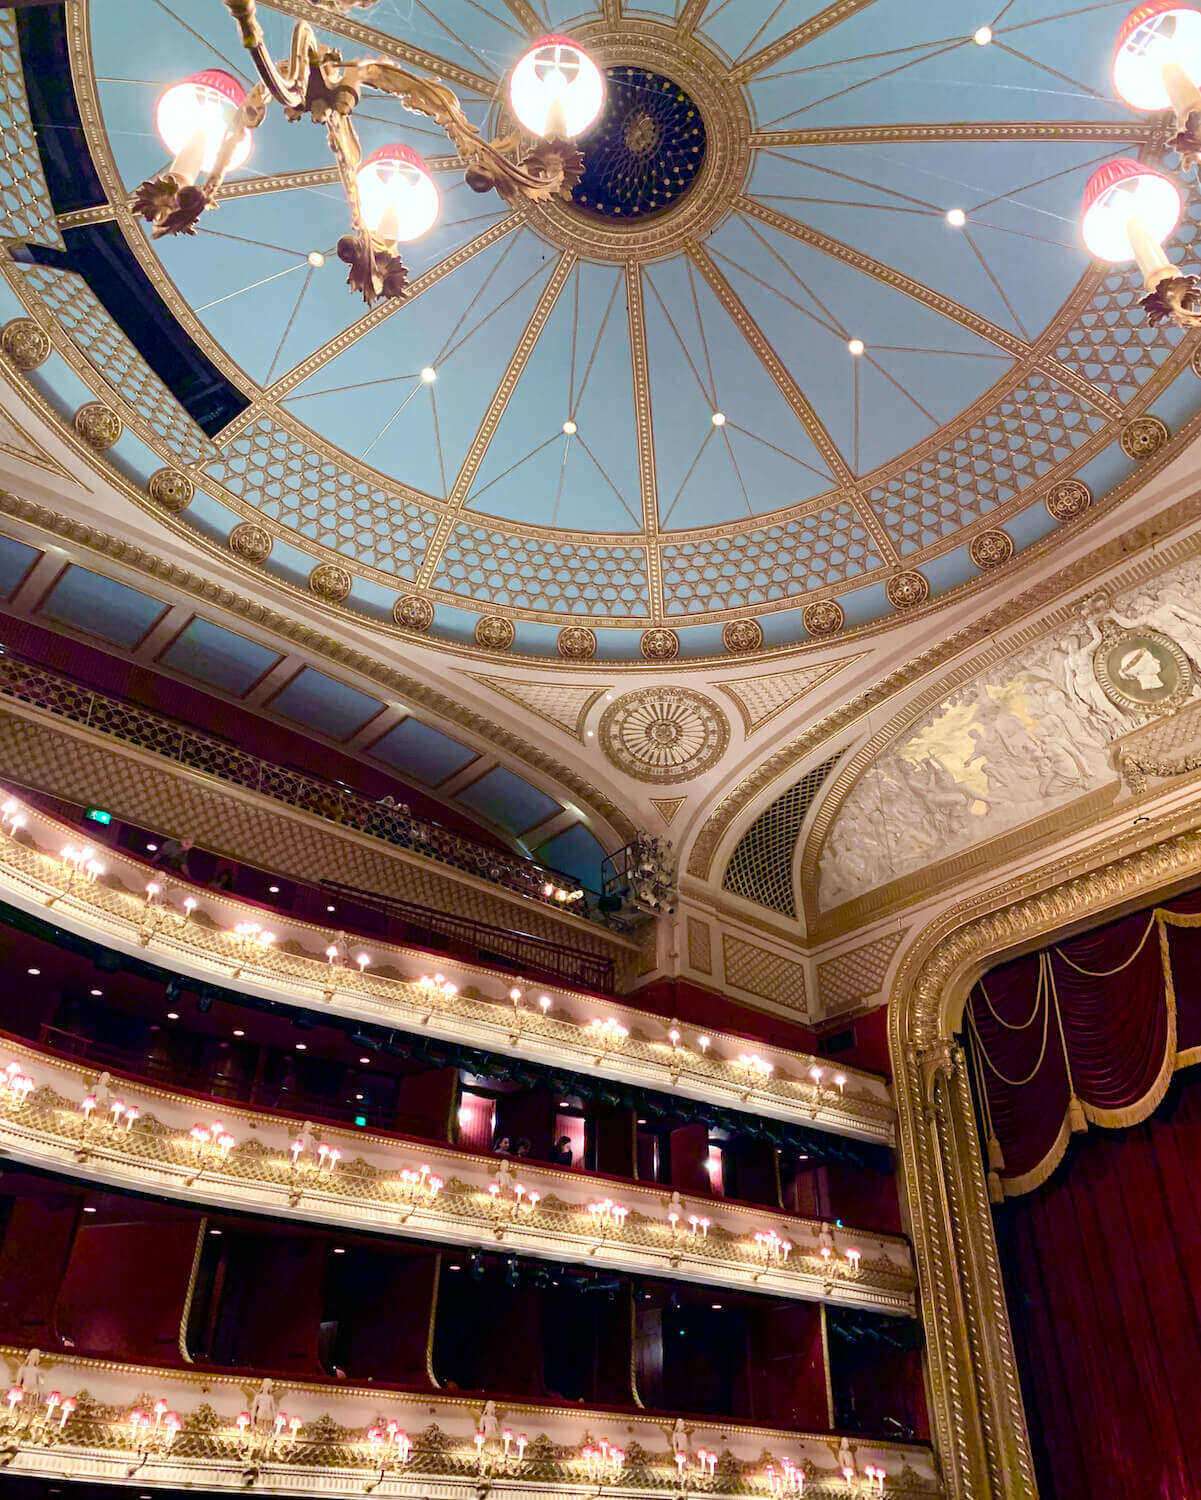 Royal Opera House - Main Stage Auditorium Roof